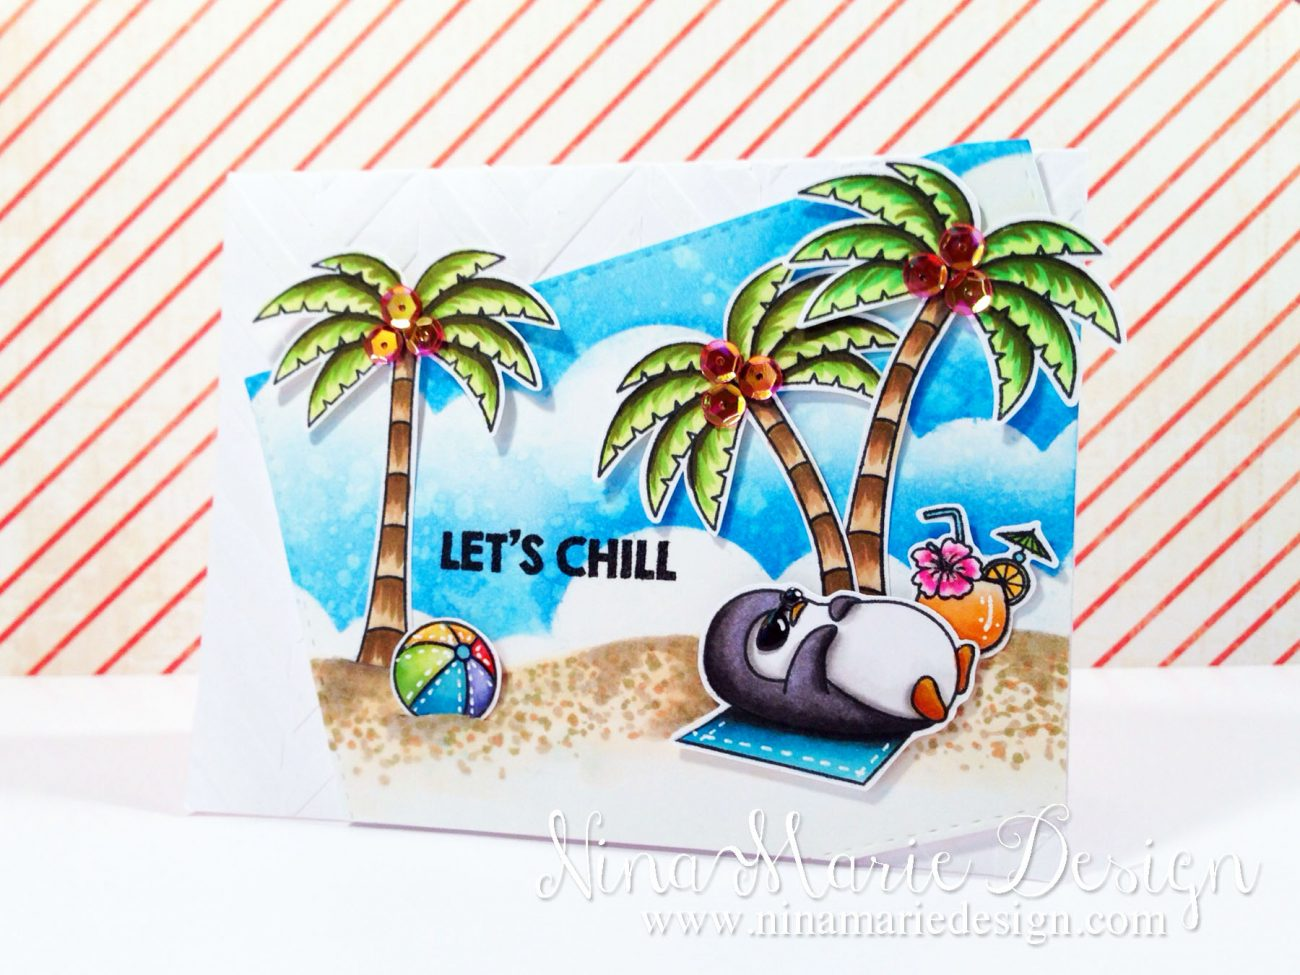 Let's Chill_2